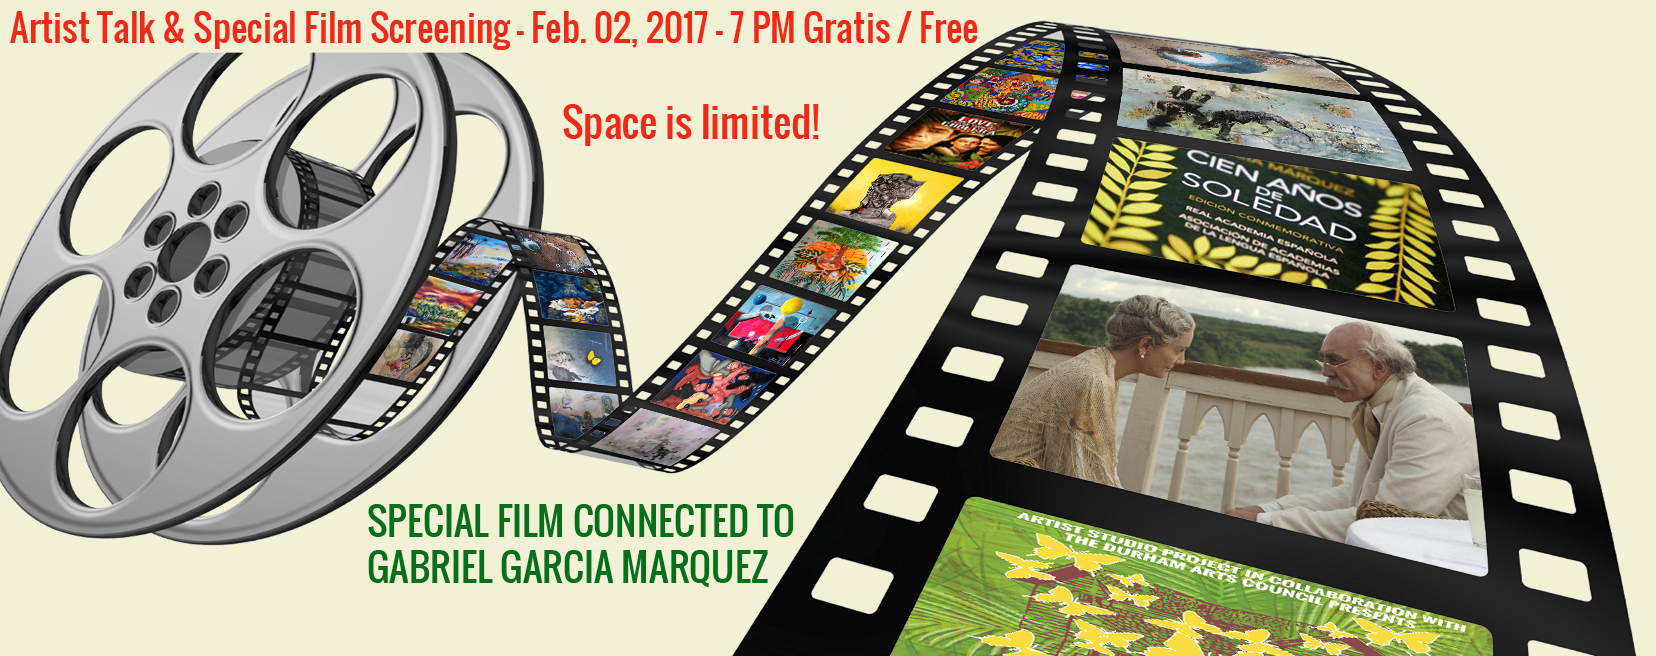 Artist Talk and Film Screening Gabriel Garcia Marquez